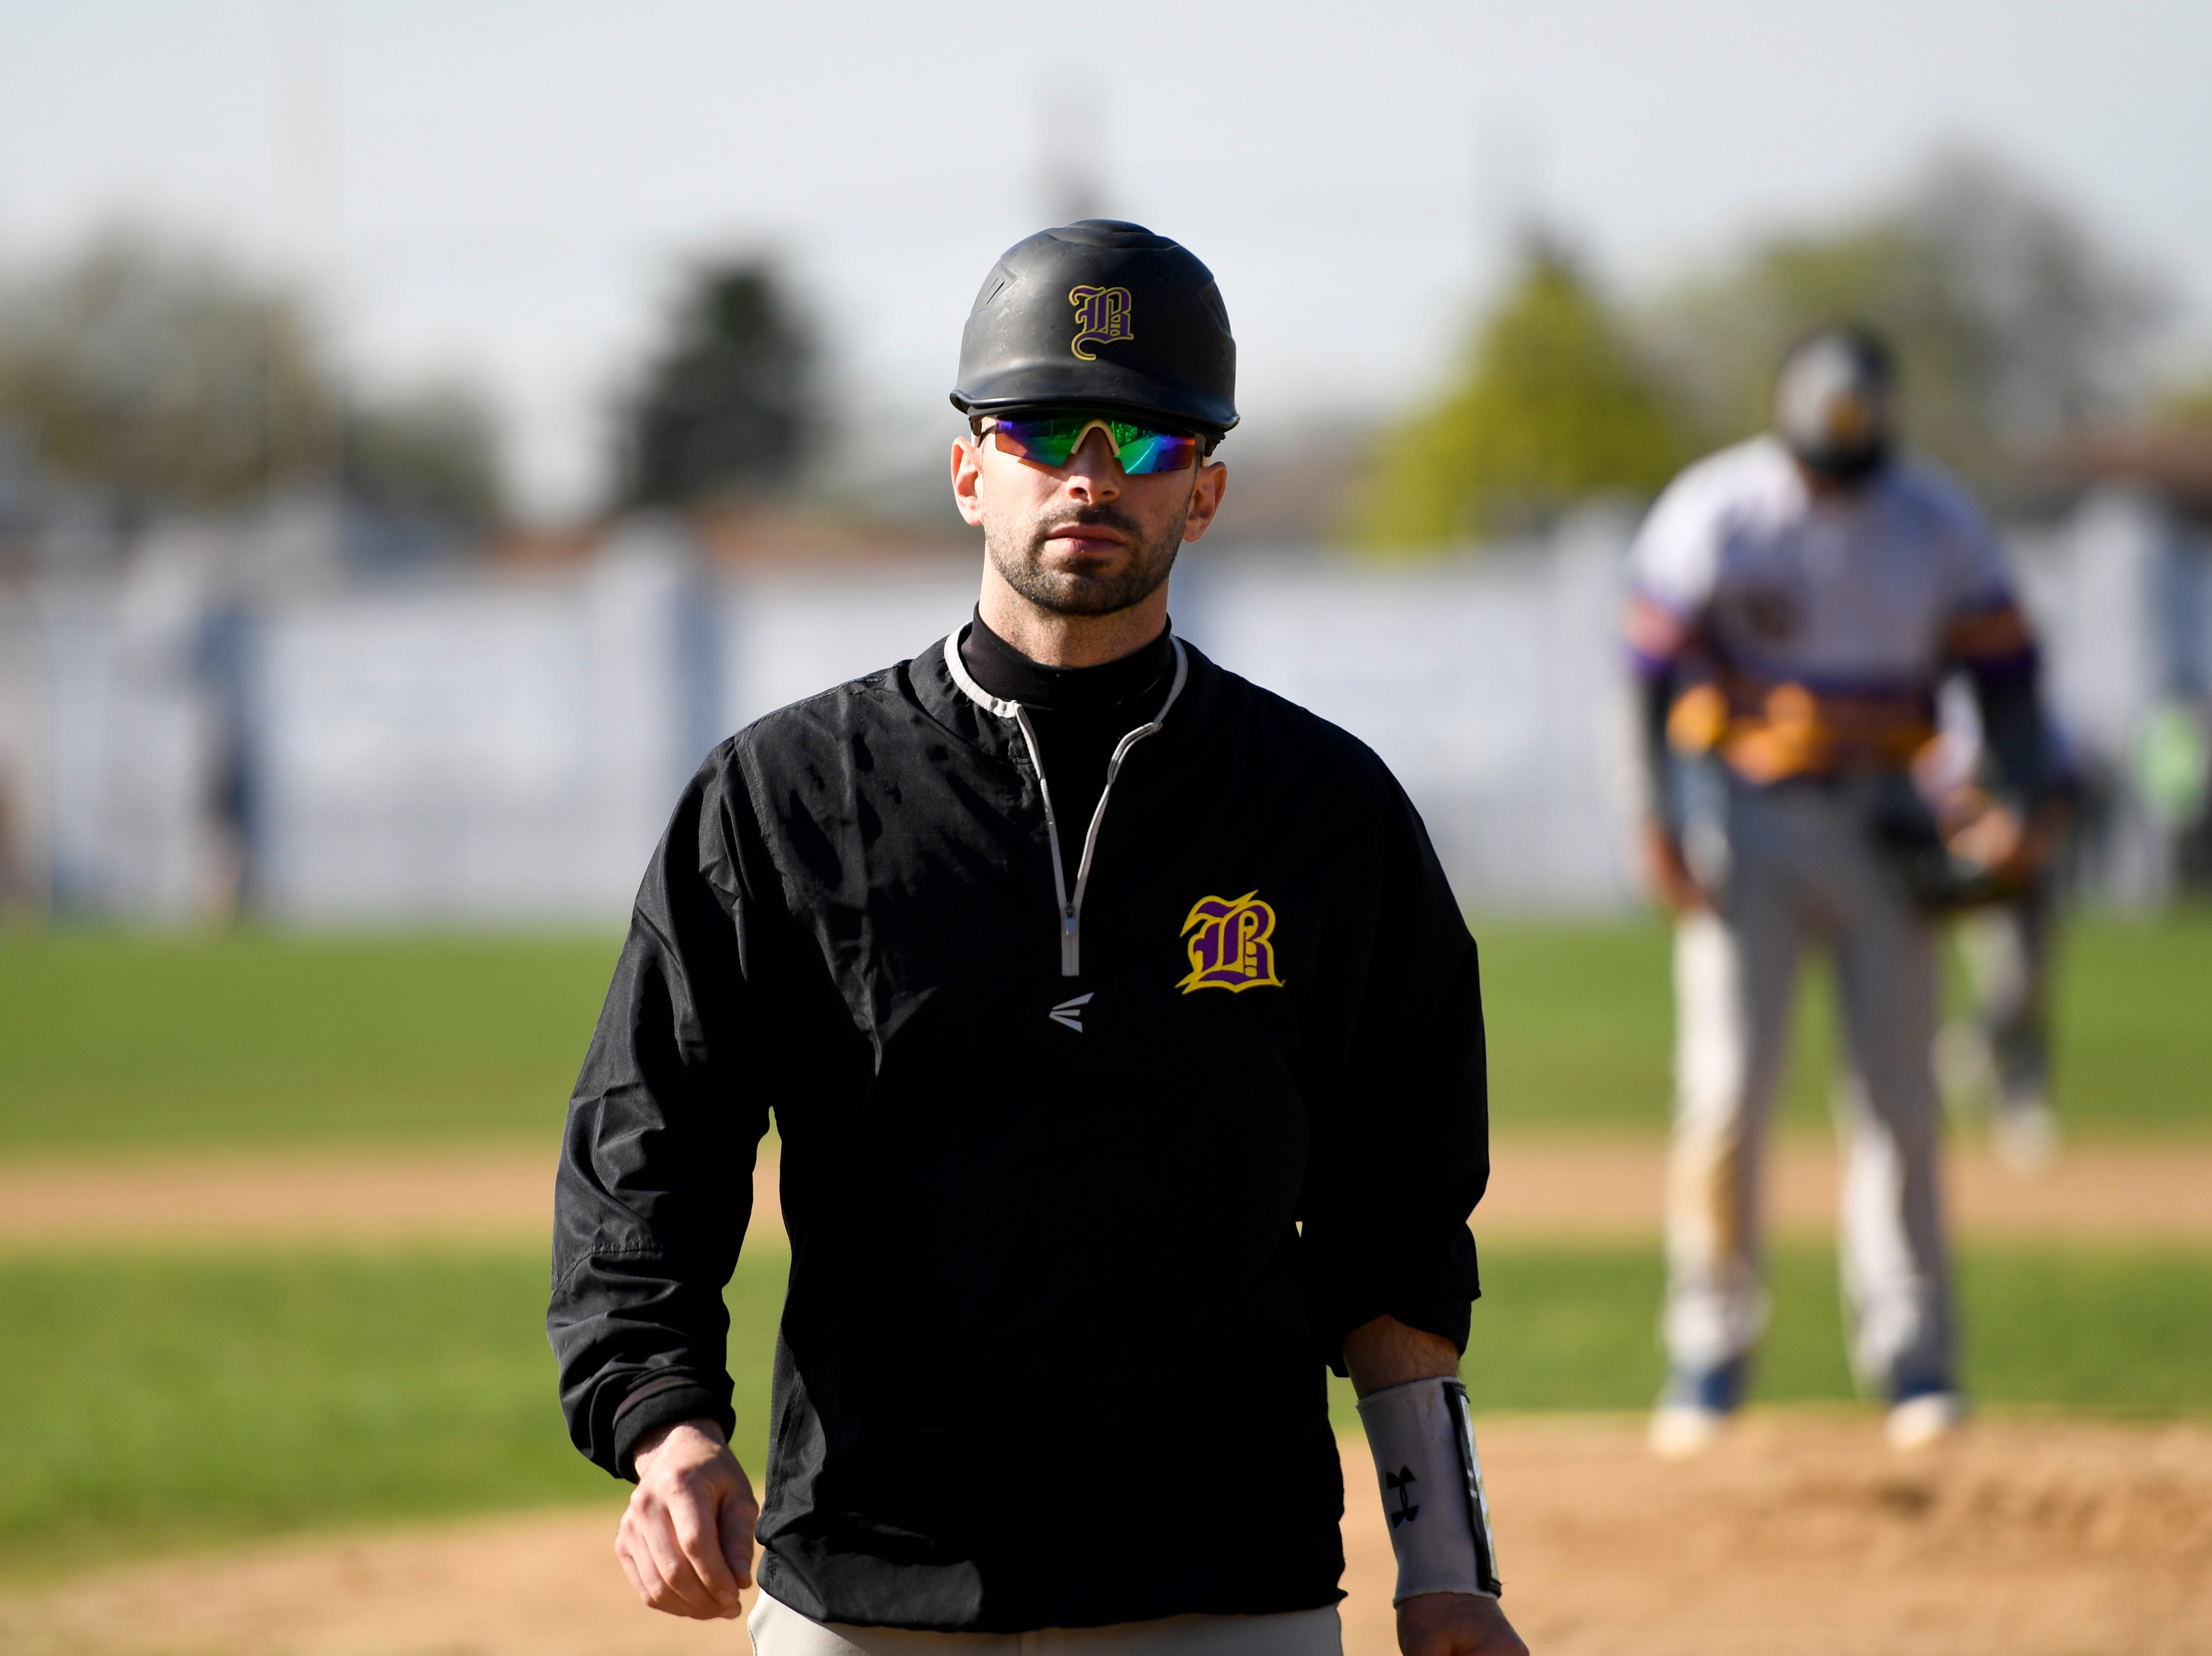 Bogota head coach Ryan Defeo walks from the pitchers mound as his team faces Garfield on Wednesday, April 17, 2019, in Garfield.